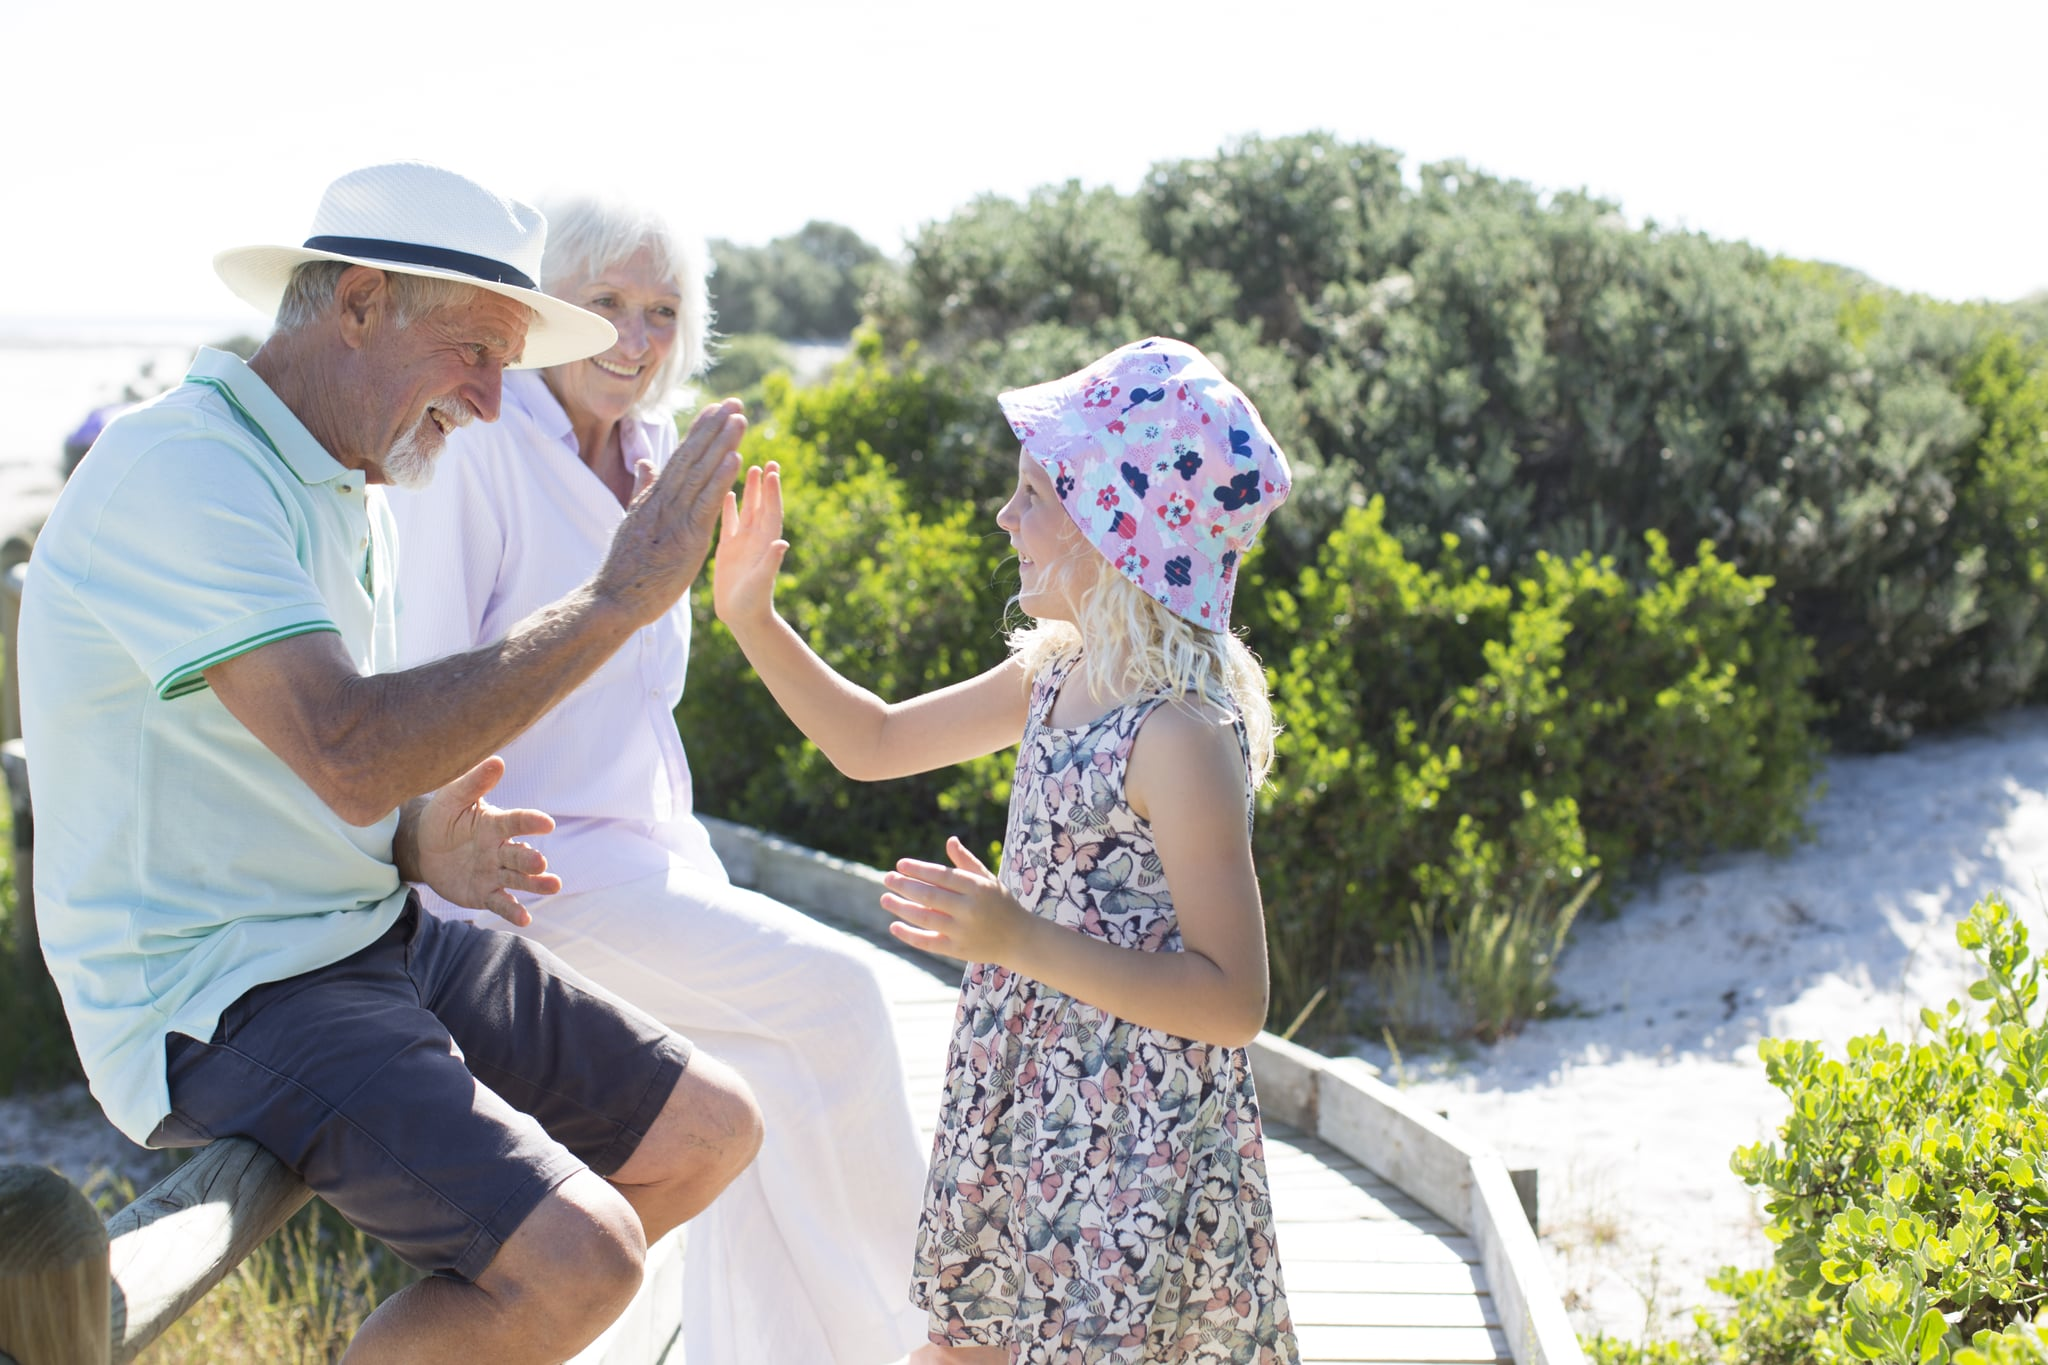 Senior couple, aged 70-75, playing outdoors with their grandchildren